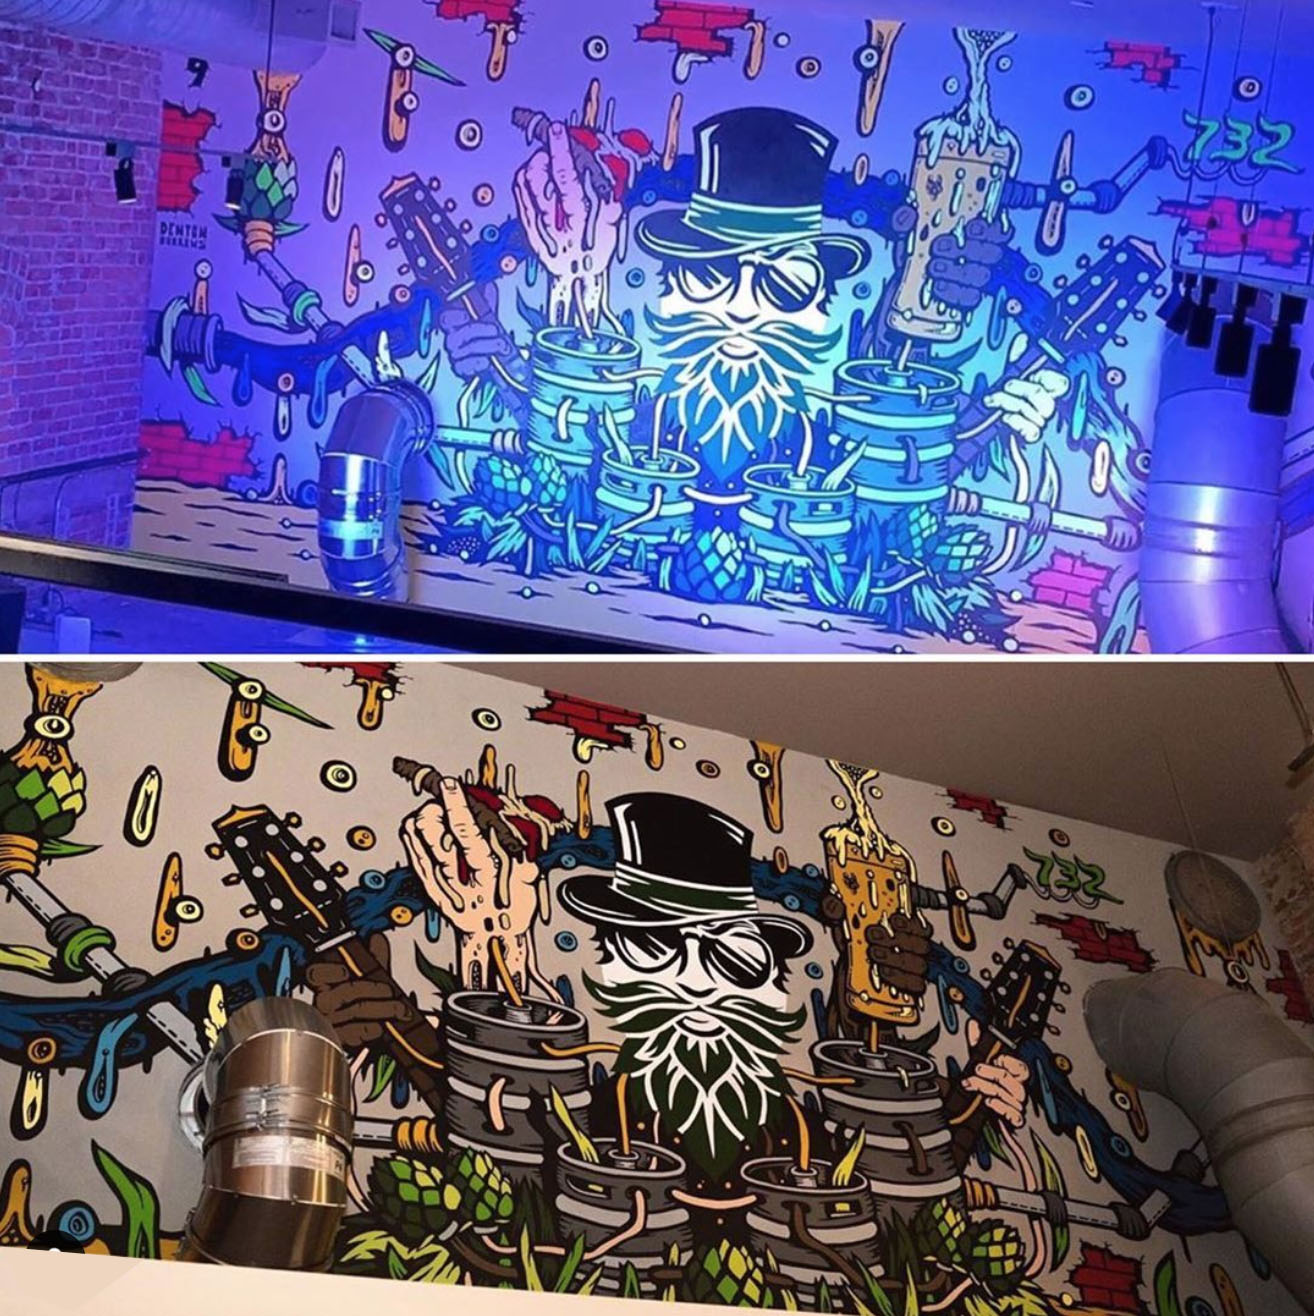 dripped-on-bru-daddy-indoor-mural